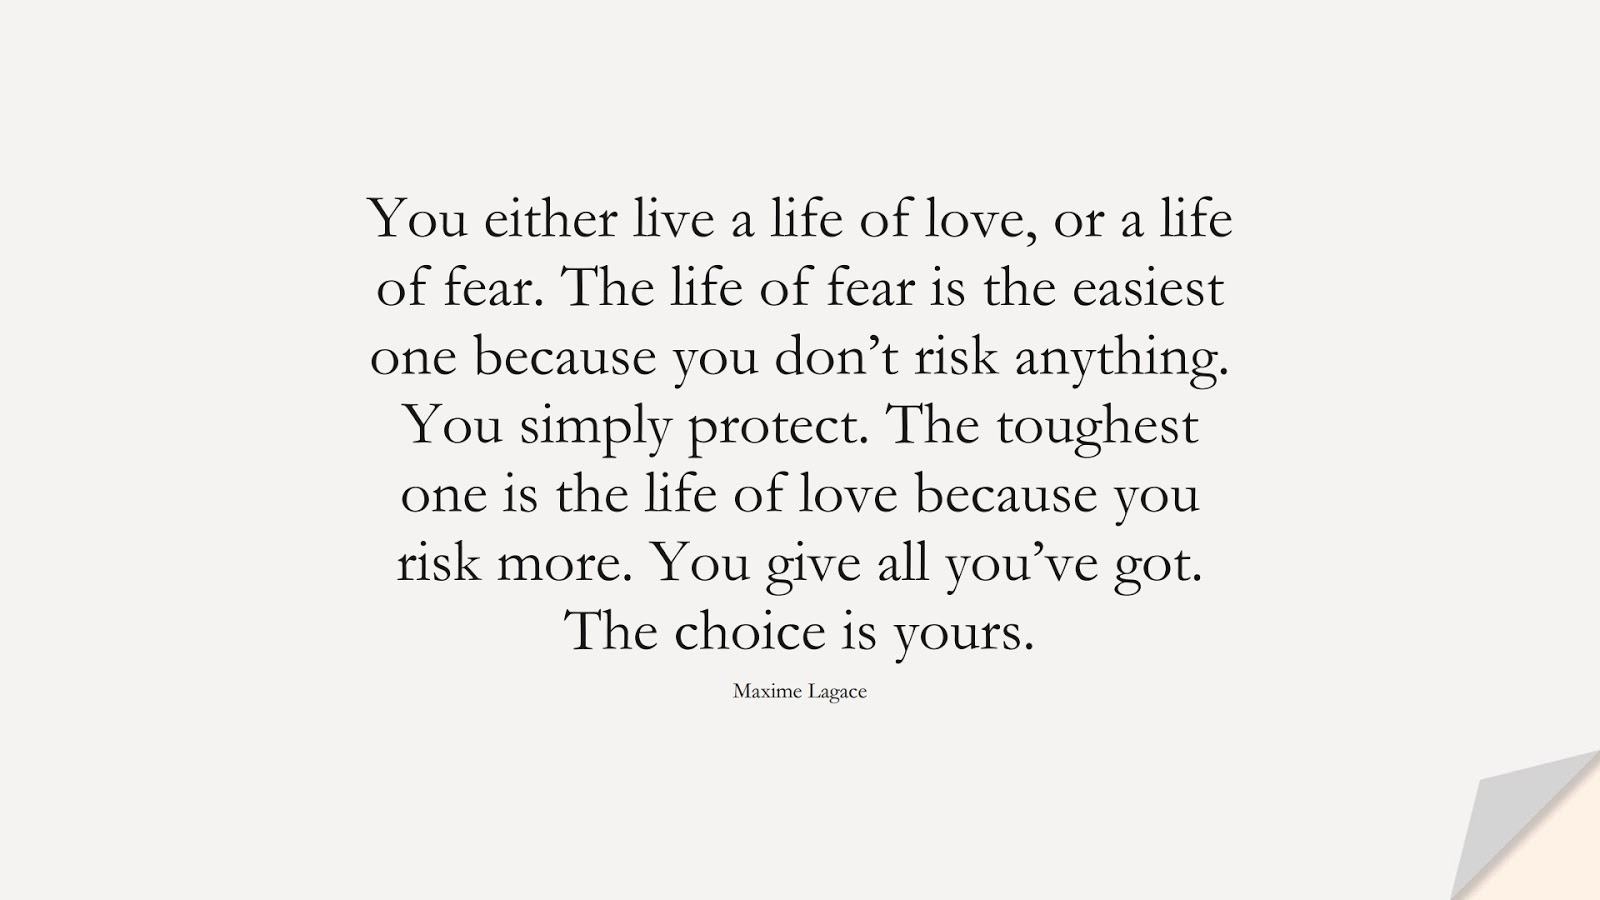 You either live a life of love, or a life of fear. The life of fear is the easiest one because you don't risk anything. You simply protect. The toughest one is the life of love because you risk more. You give all you've got. The choice is yours. (Maxime Lagace);  #LifeQuotes